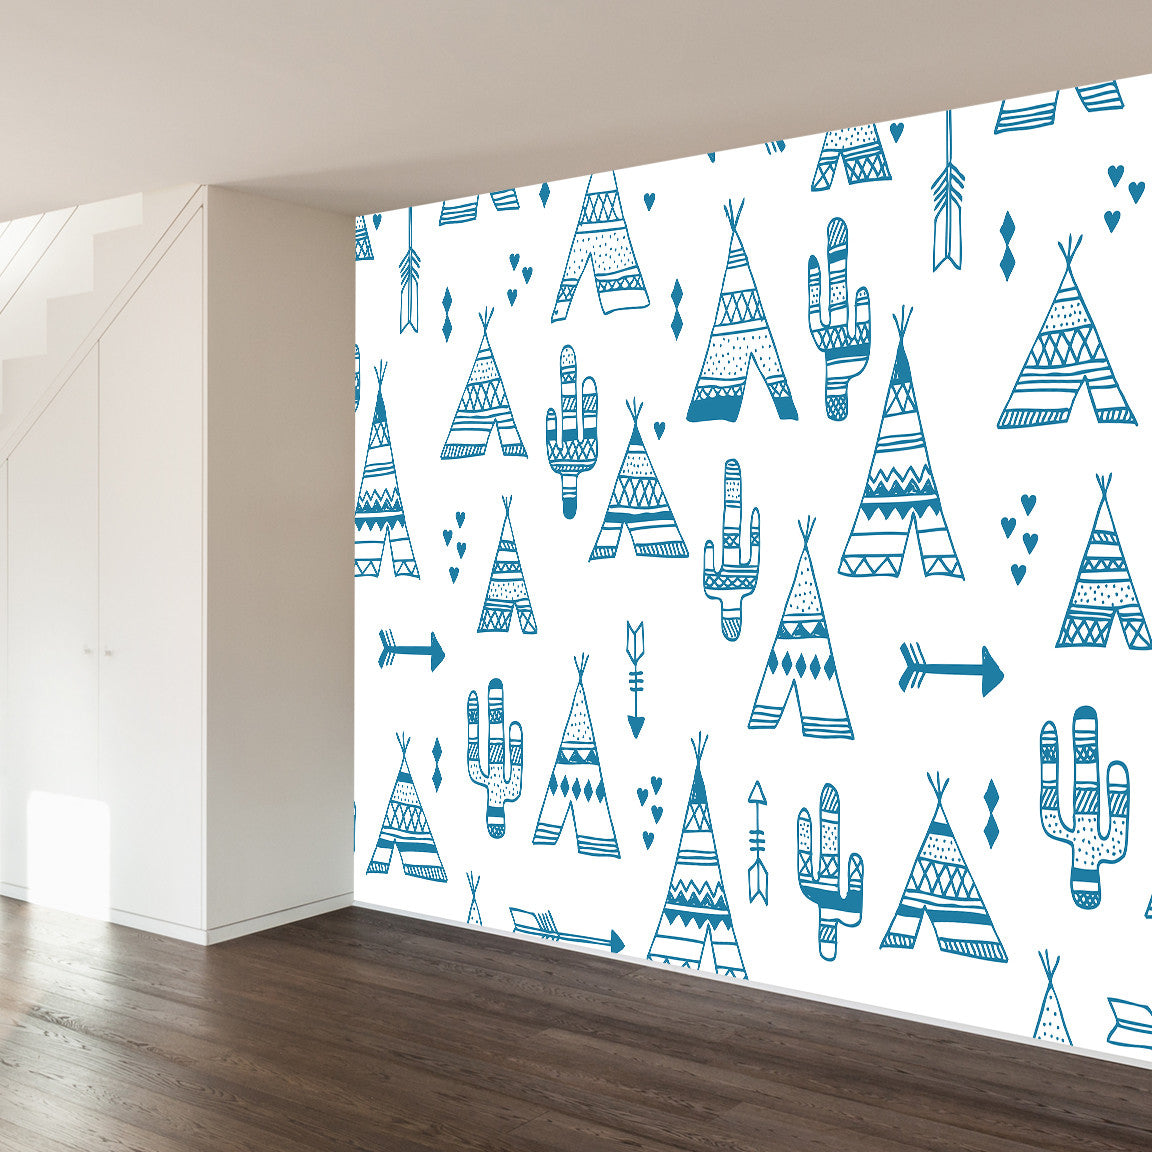 TeePee City Wall Mural image